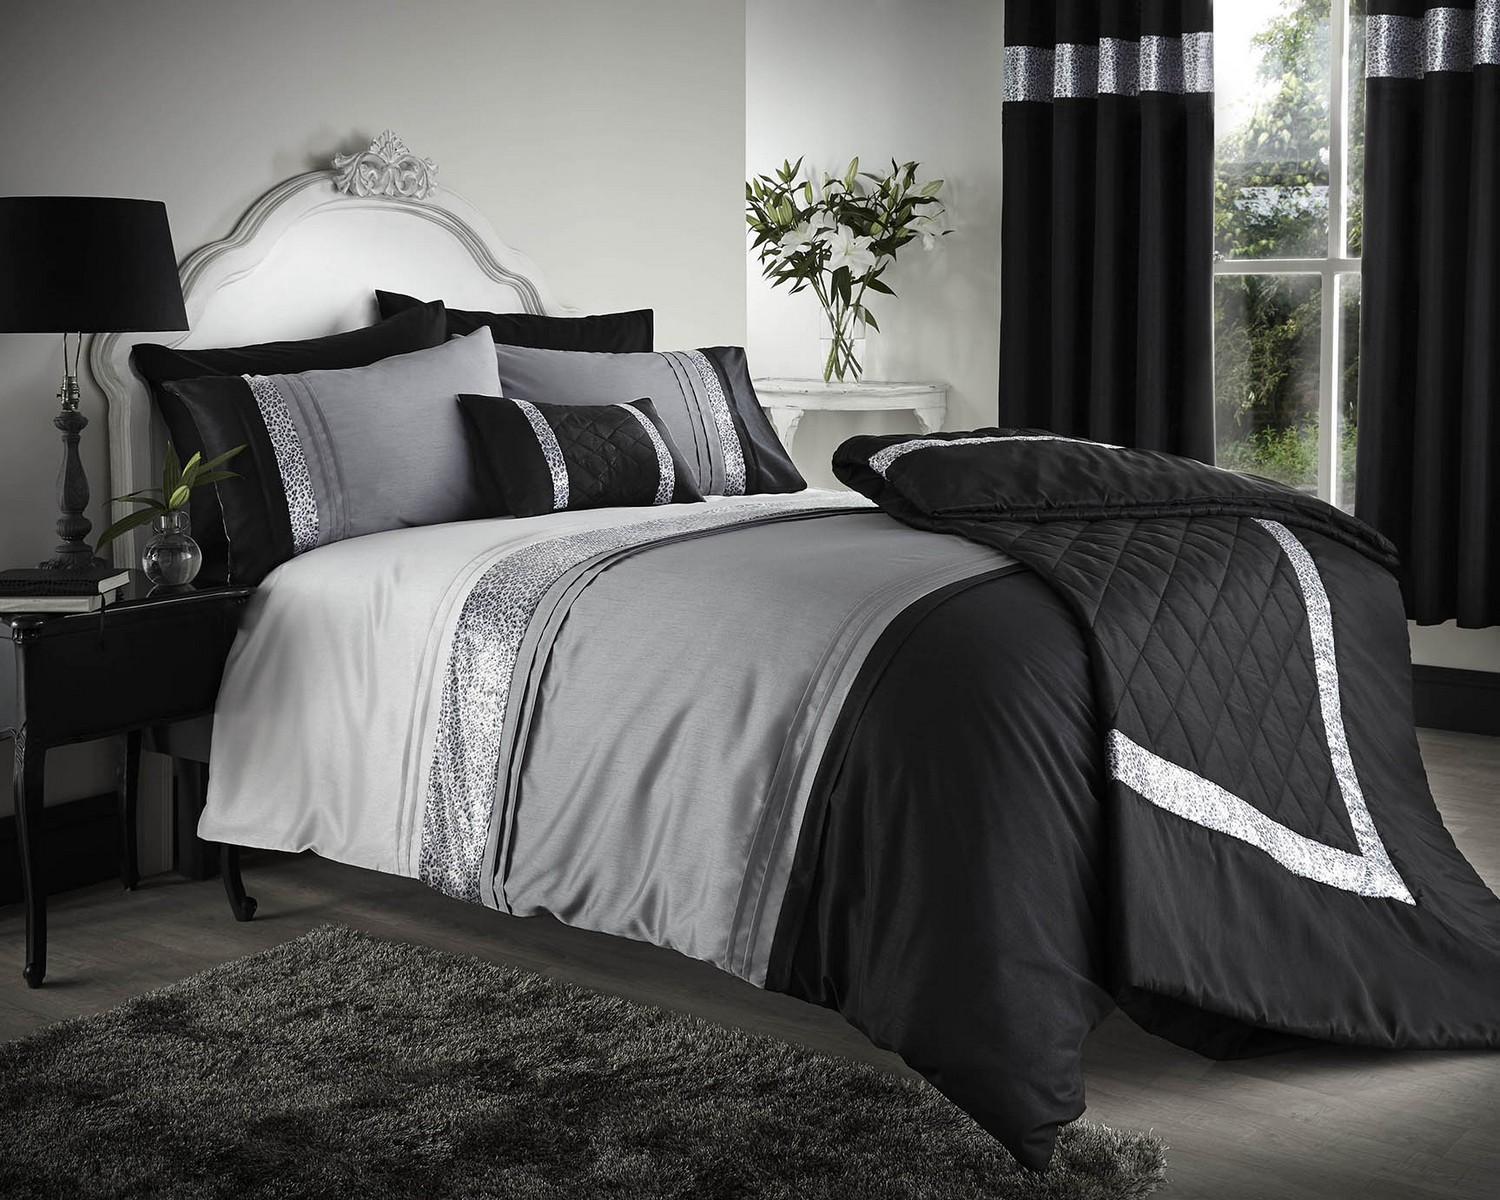 Black And Grey Bedding And Curtains Black Grey Silver Duvet Covers Bedding Bed Set Double